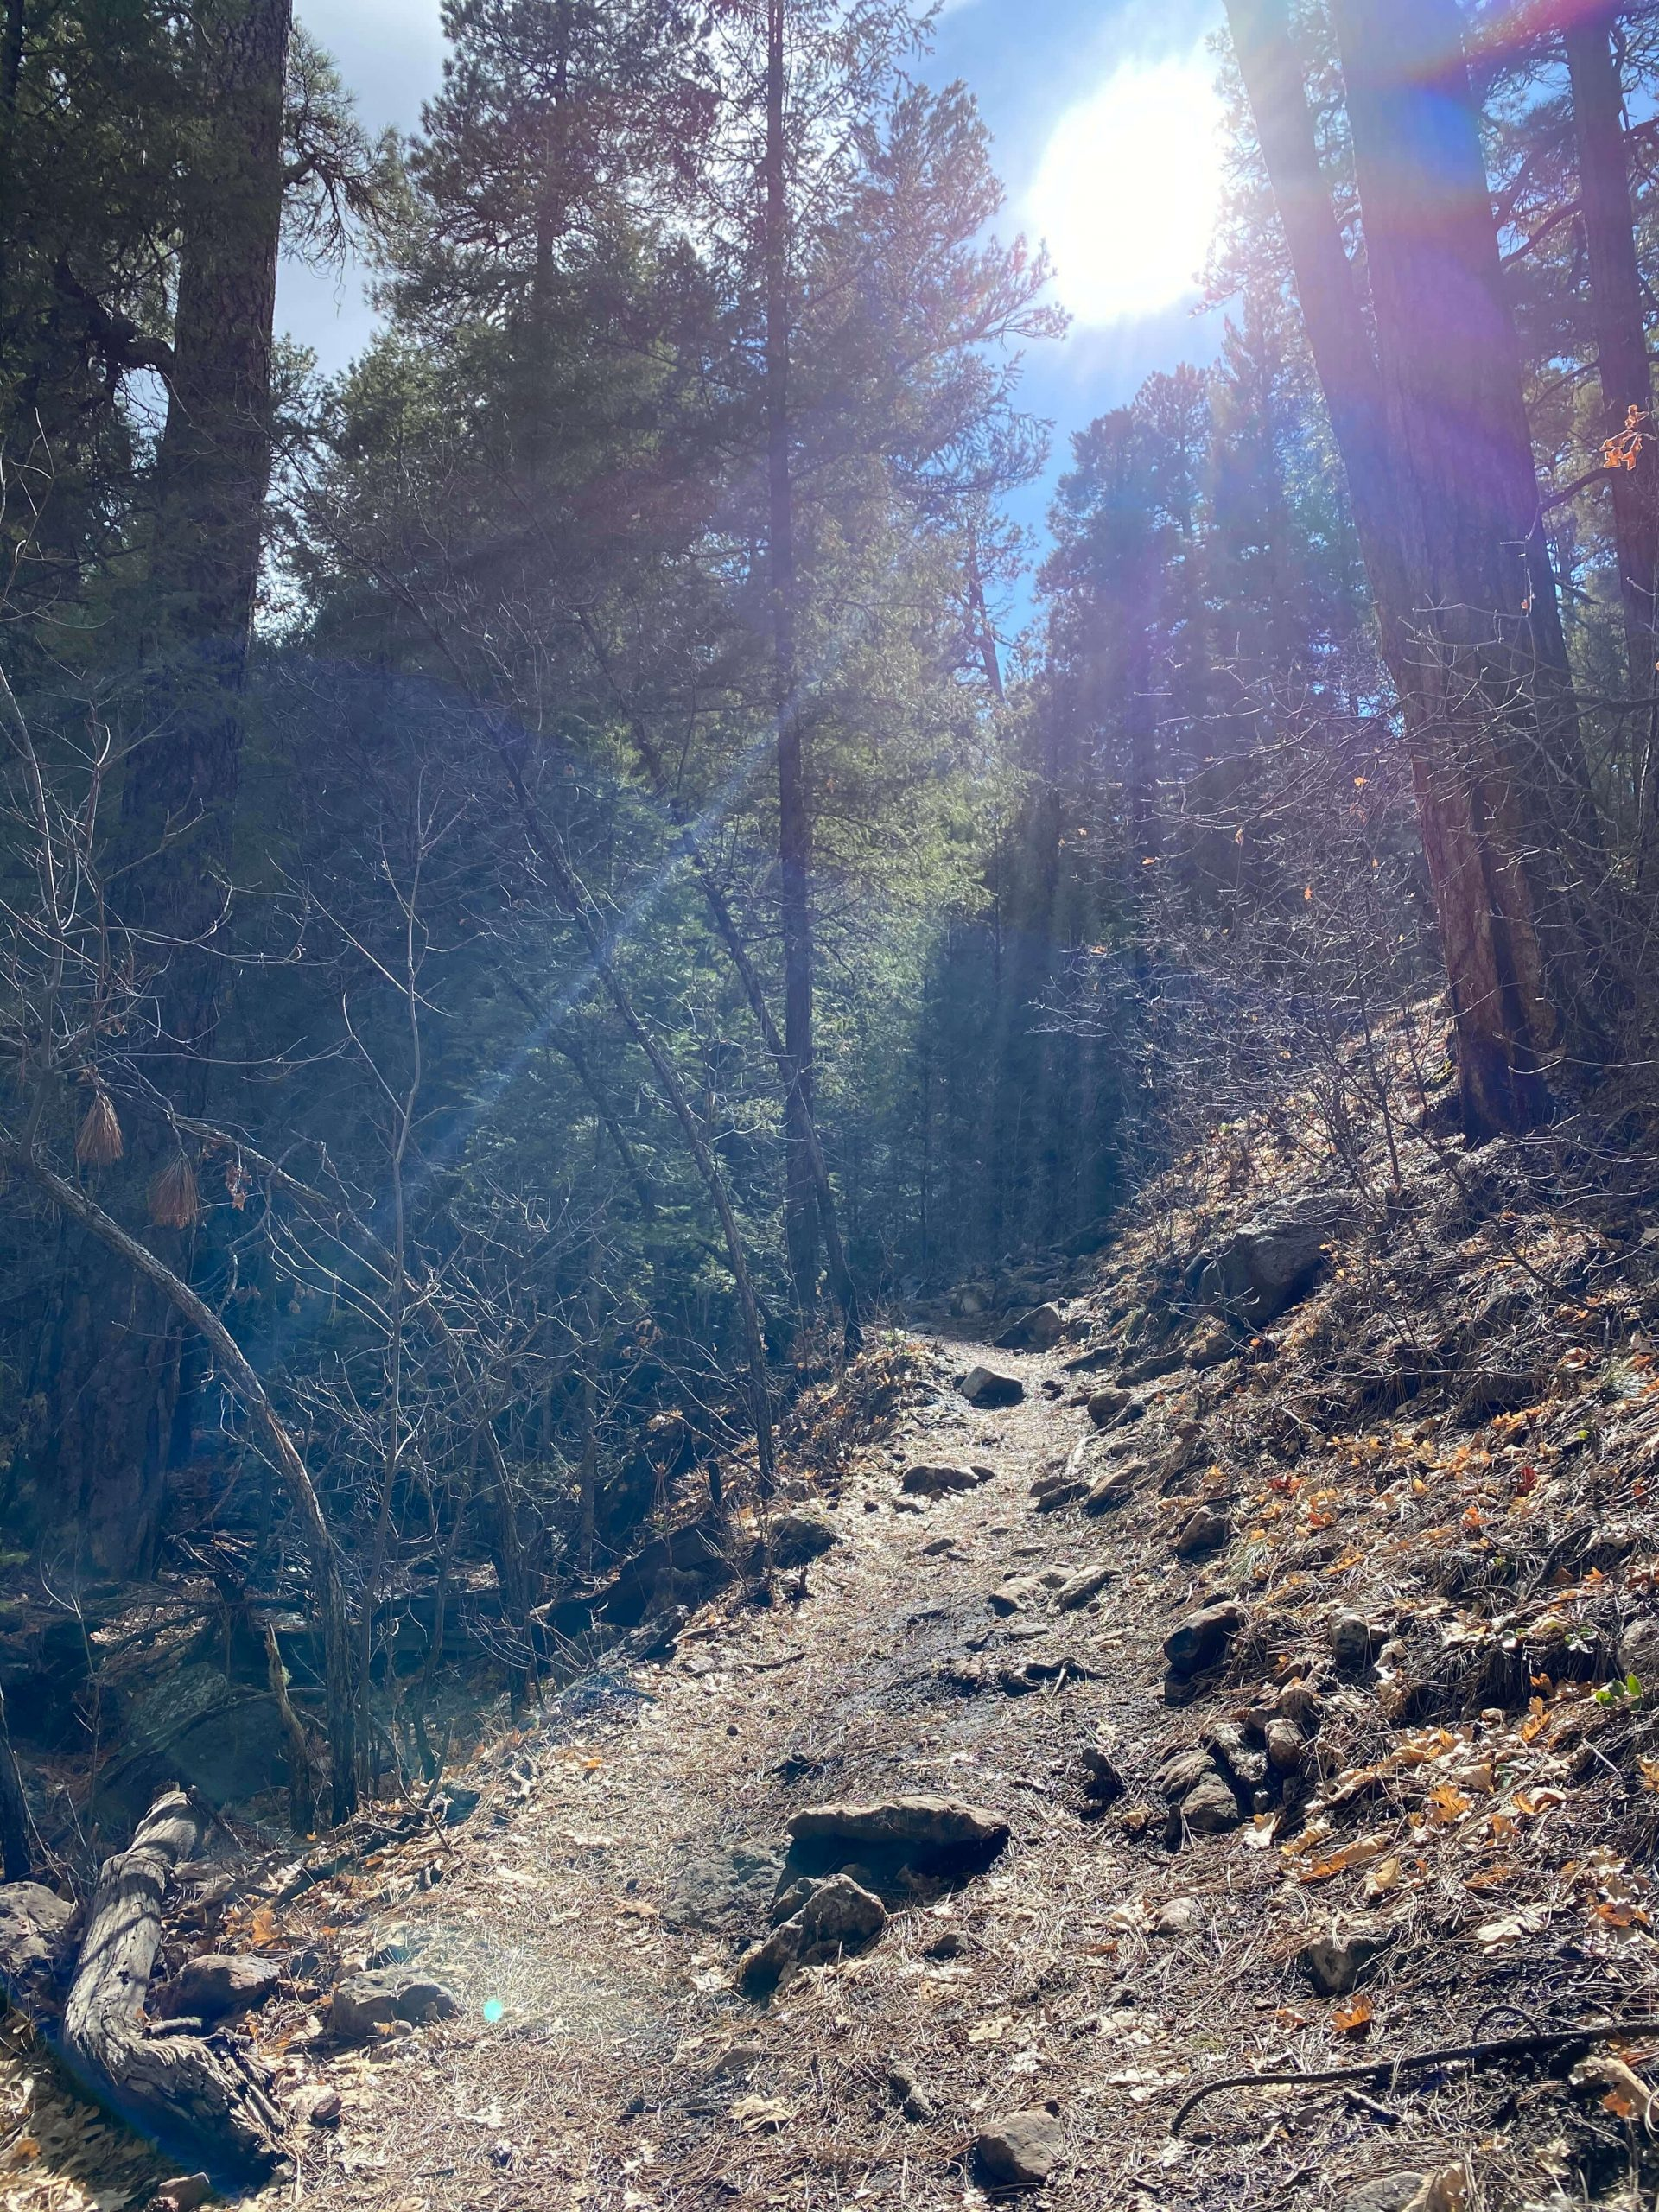 Sun Shining on Hiking Trail